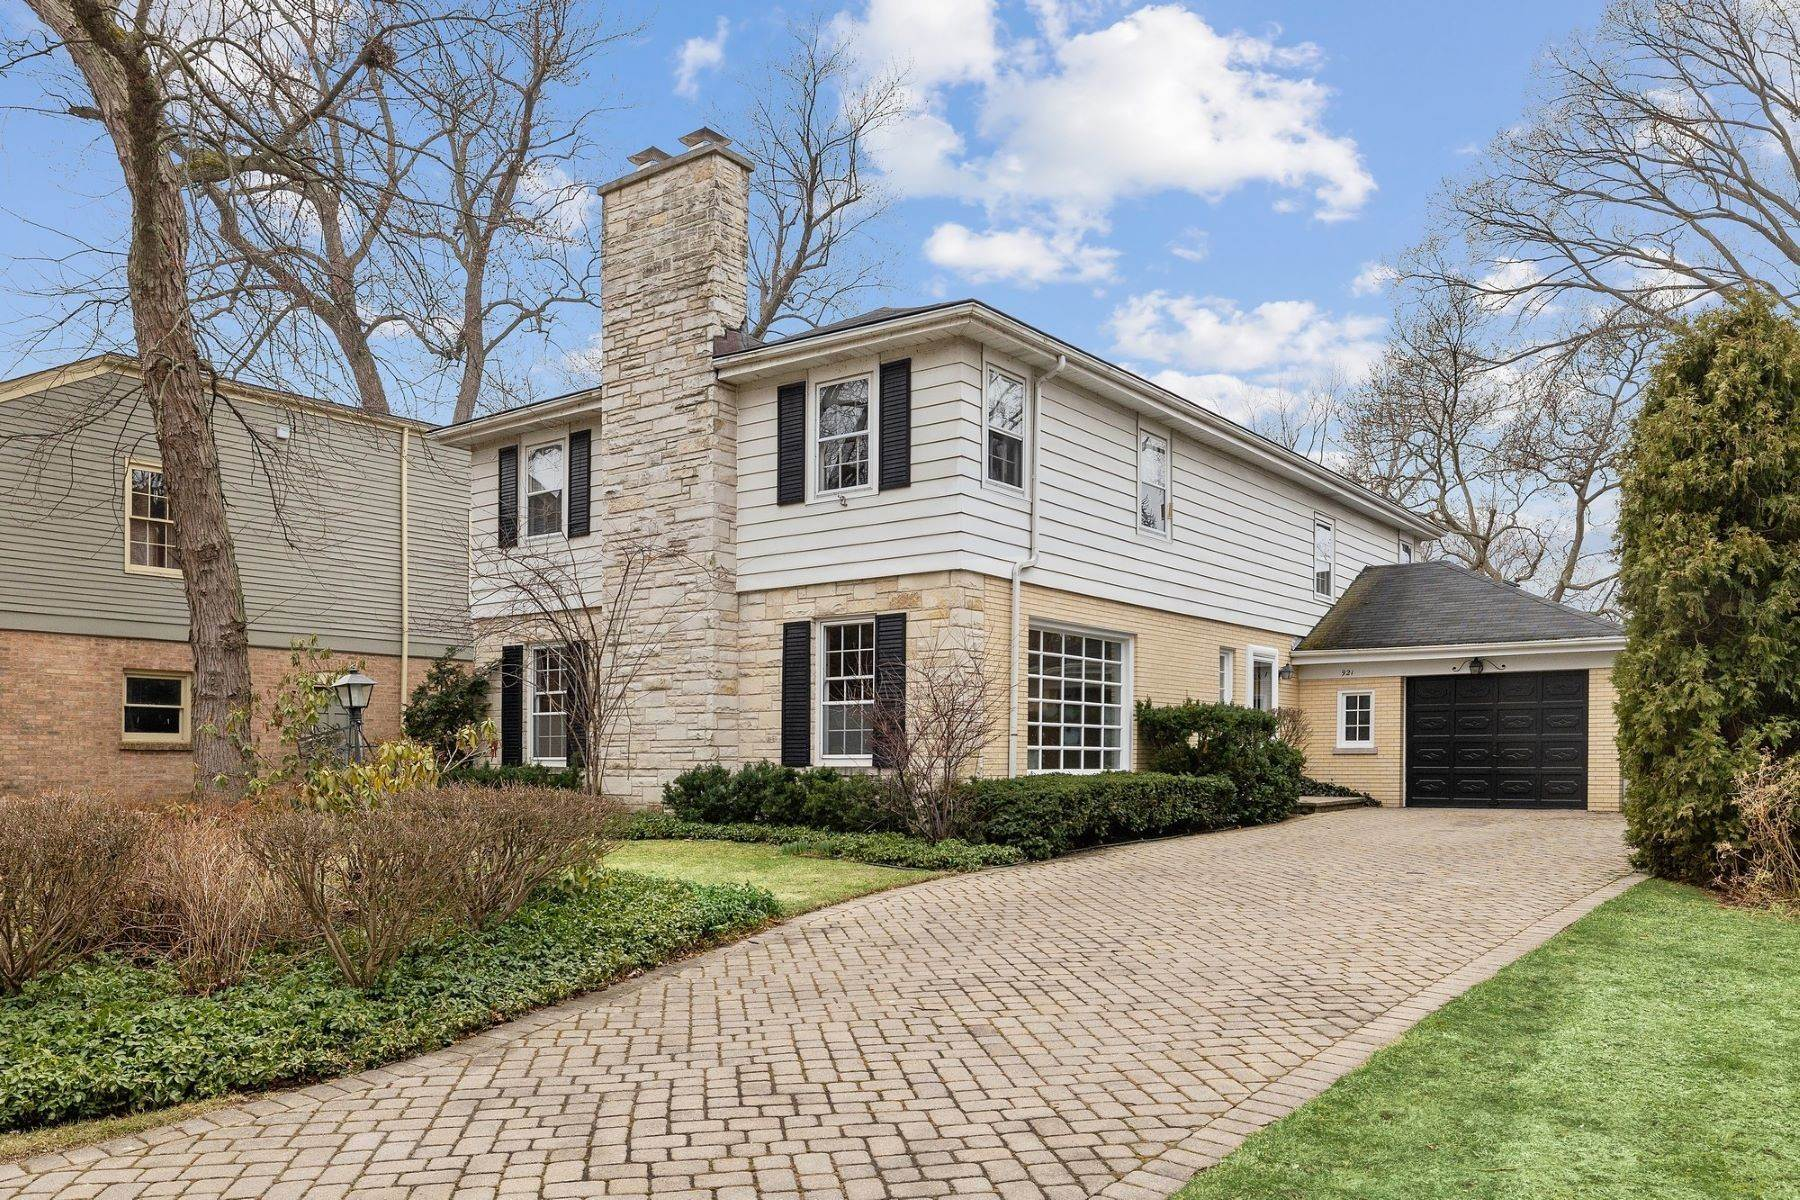 Single Family Homes for Sale at Indiana Hill Estates Elegance 921 Pontiac Road Wilmette, Illinois 60091 United States